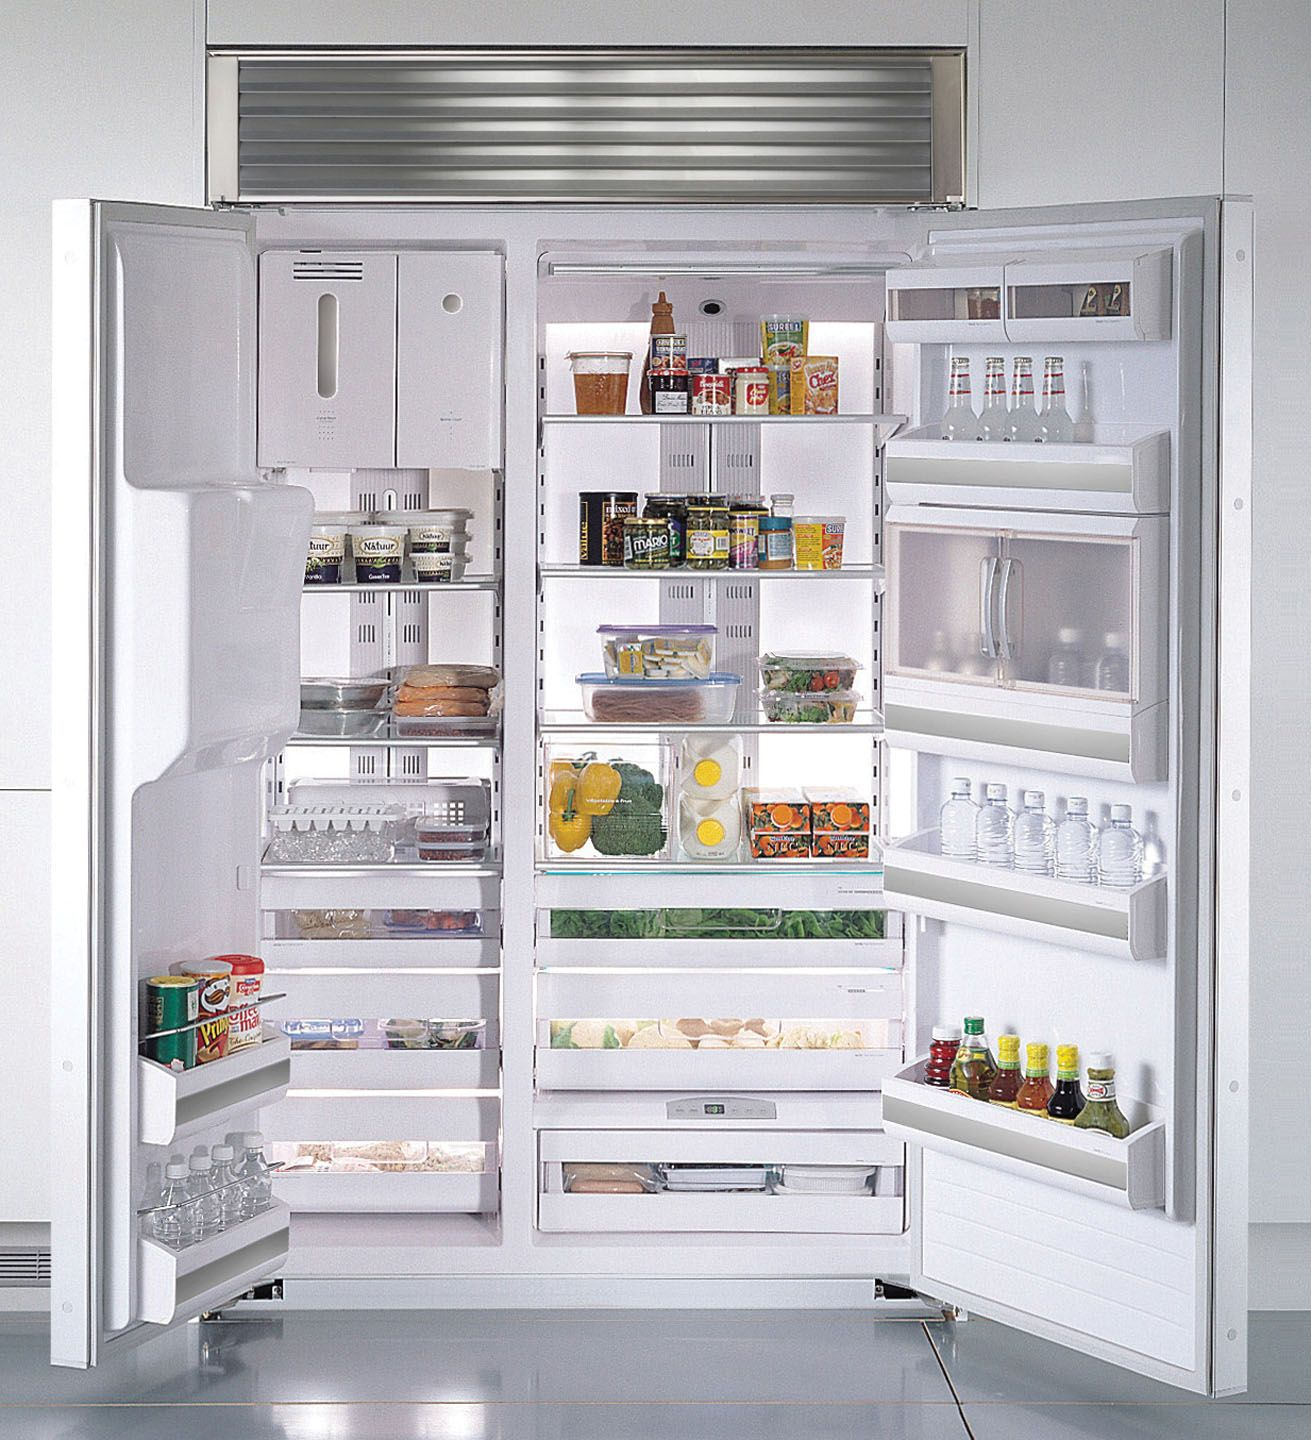 Kenmore Pro 29.5 cu. ft.  Built-In Side-By-Side Refrigerator